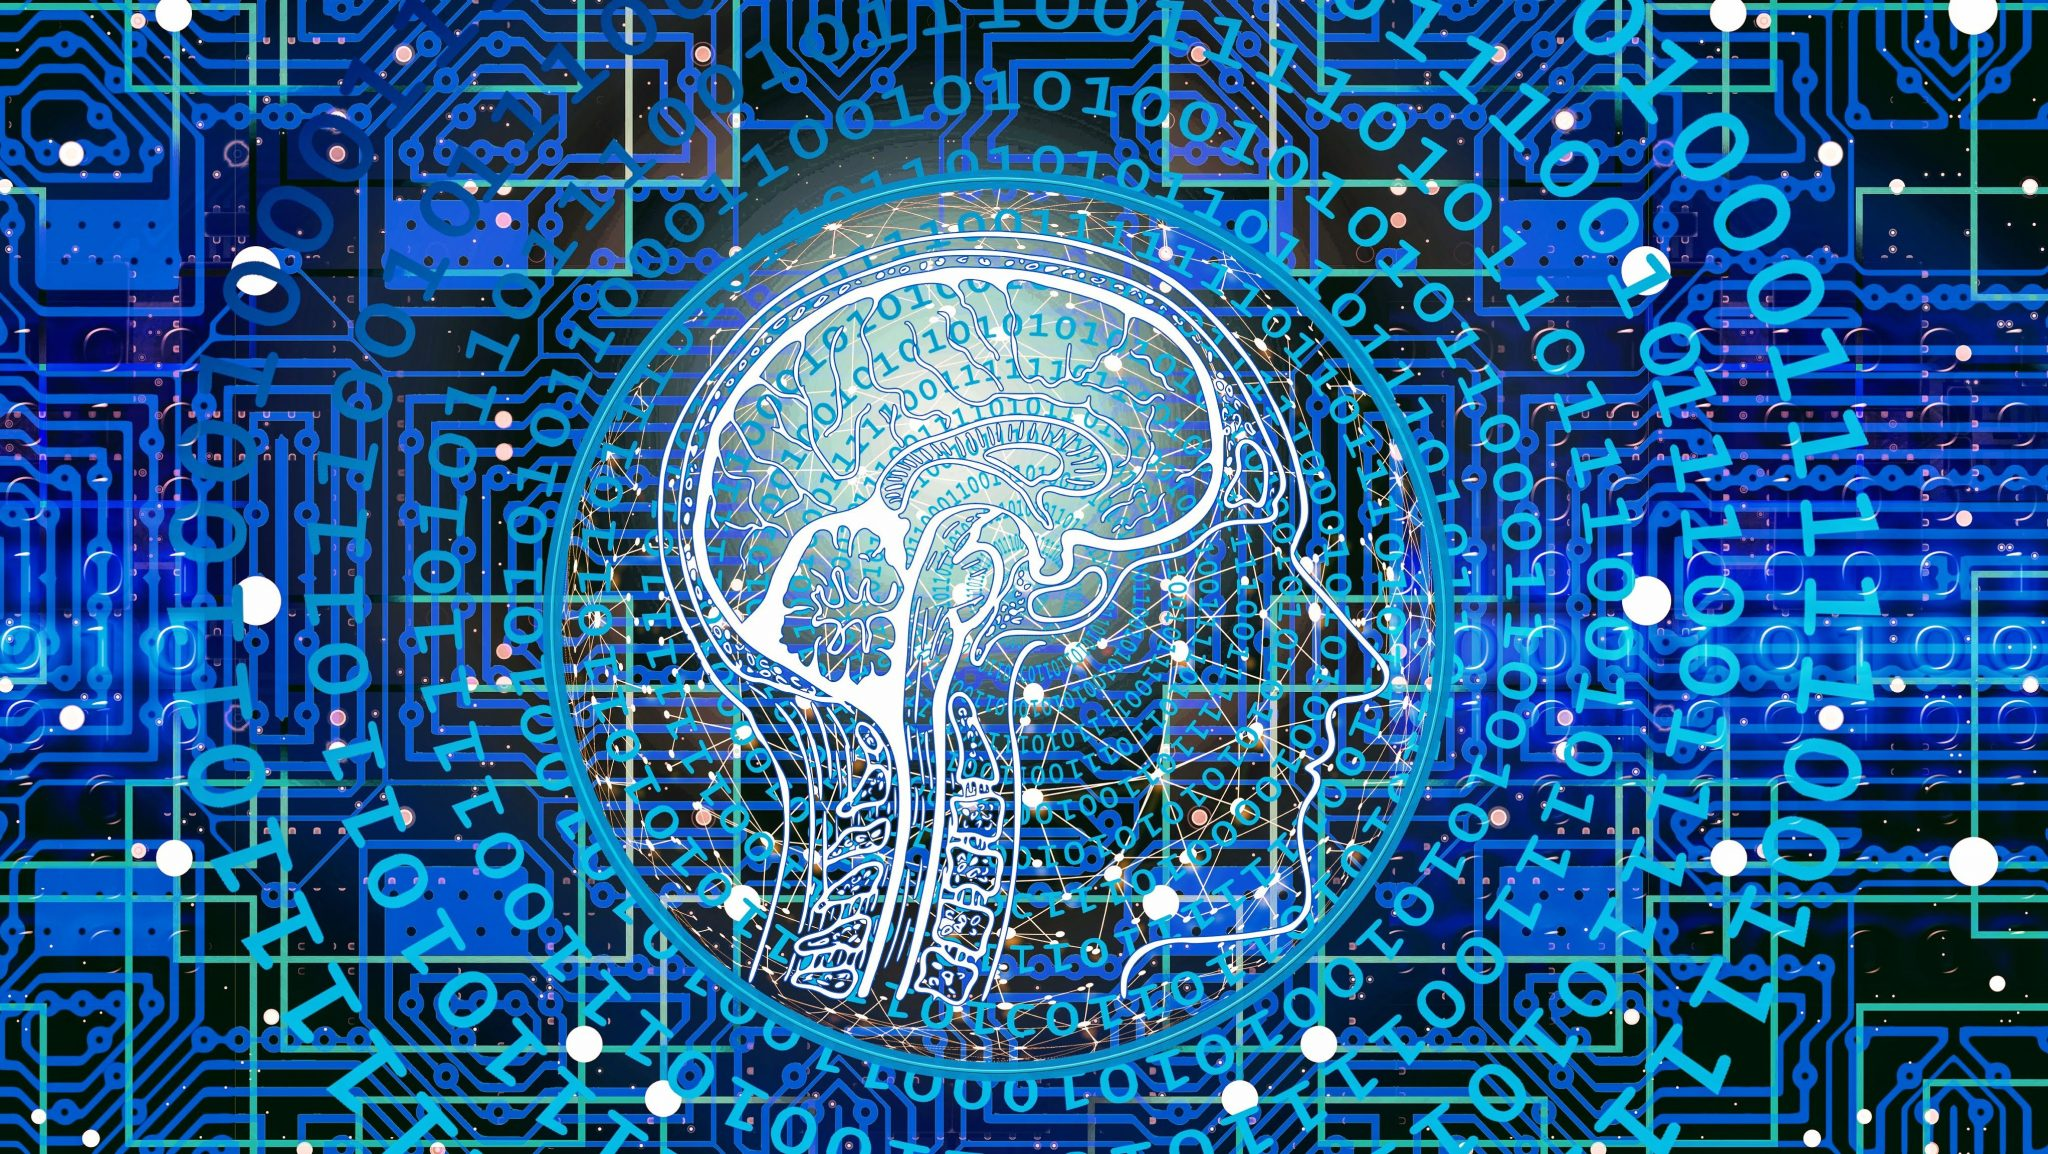 Improving Artificial Intelligence AI for cancer treatment and prevention aim of EC call.